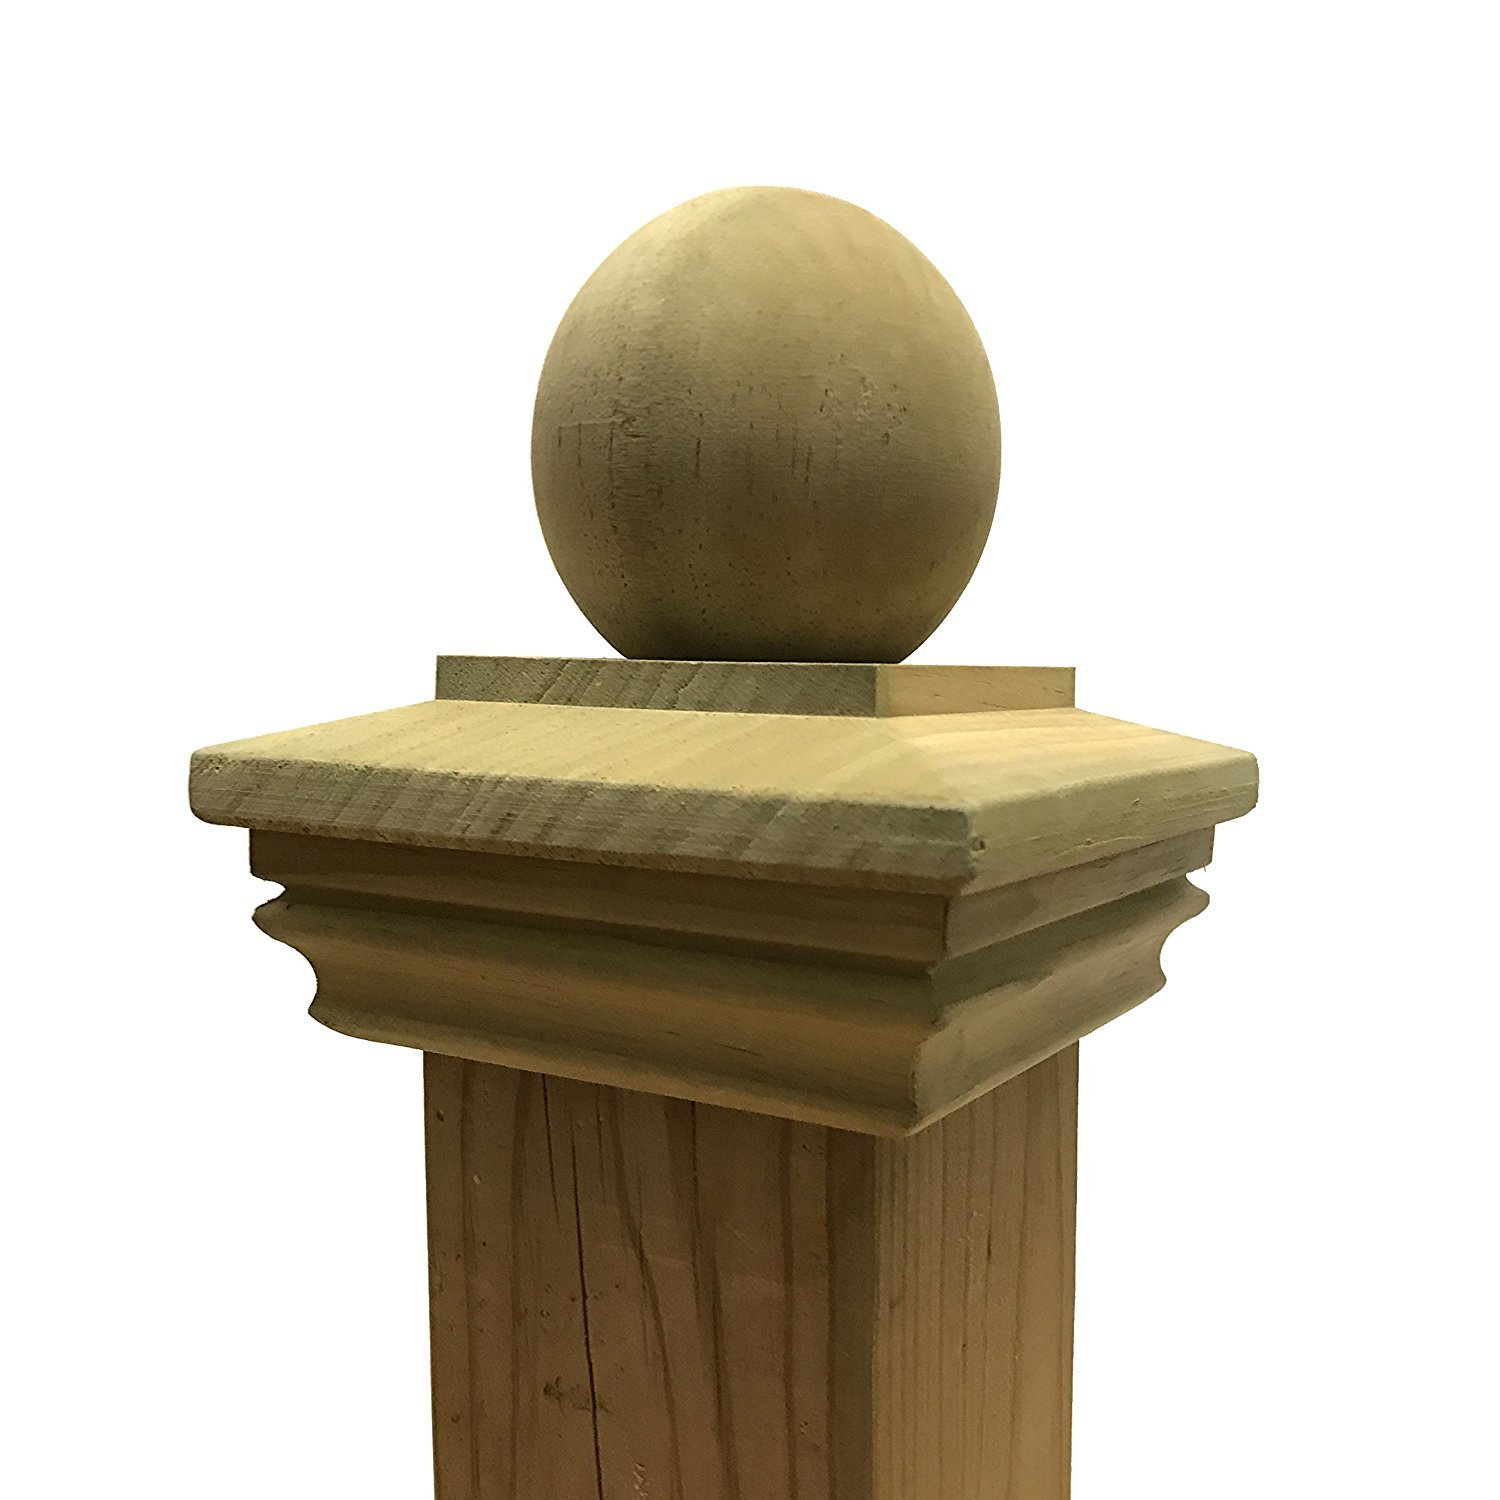 Pressure Treated Wood Garabaldi Ball Post Cap for 3.5 x 3.5 Fence & Deck Posts Rail Simple